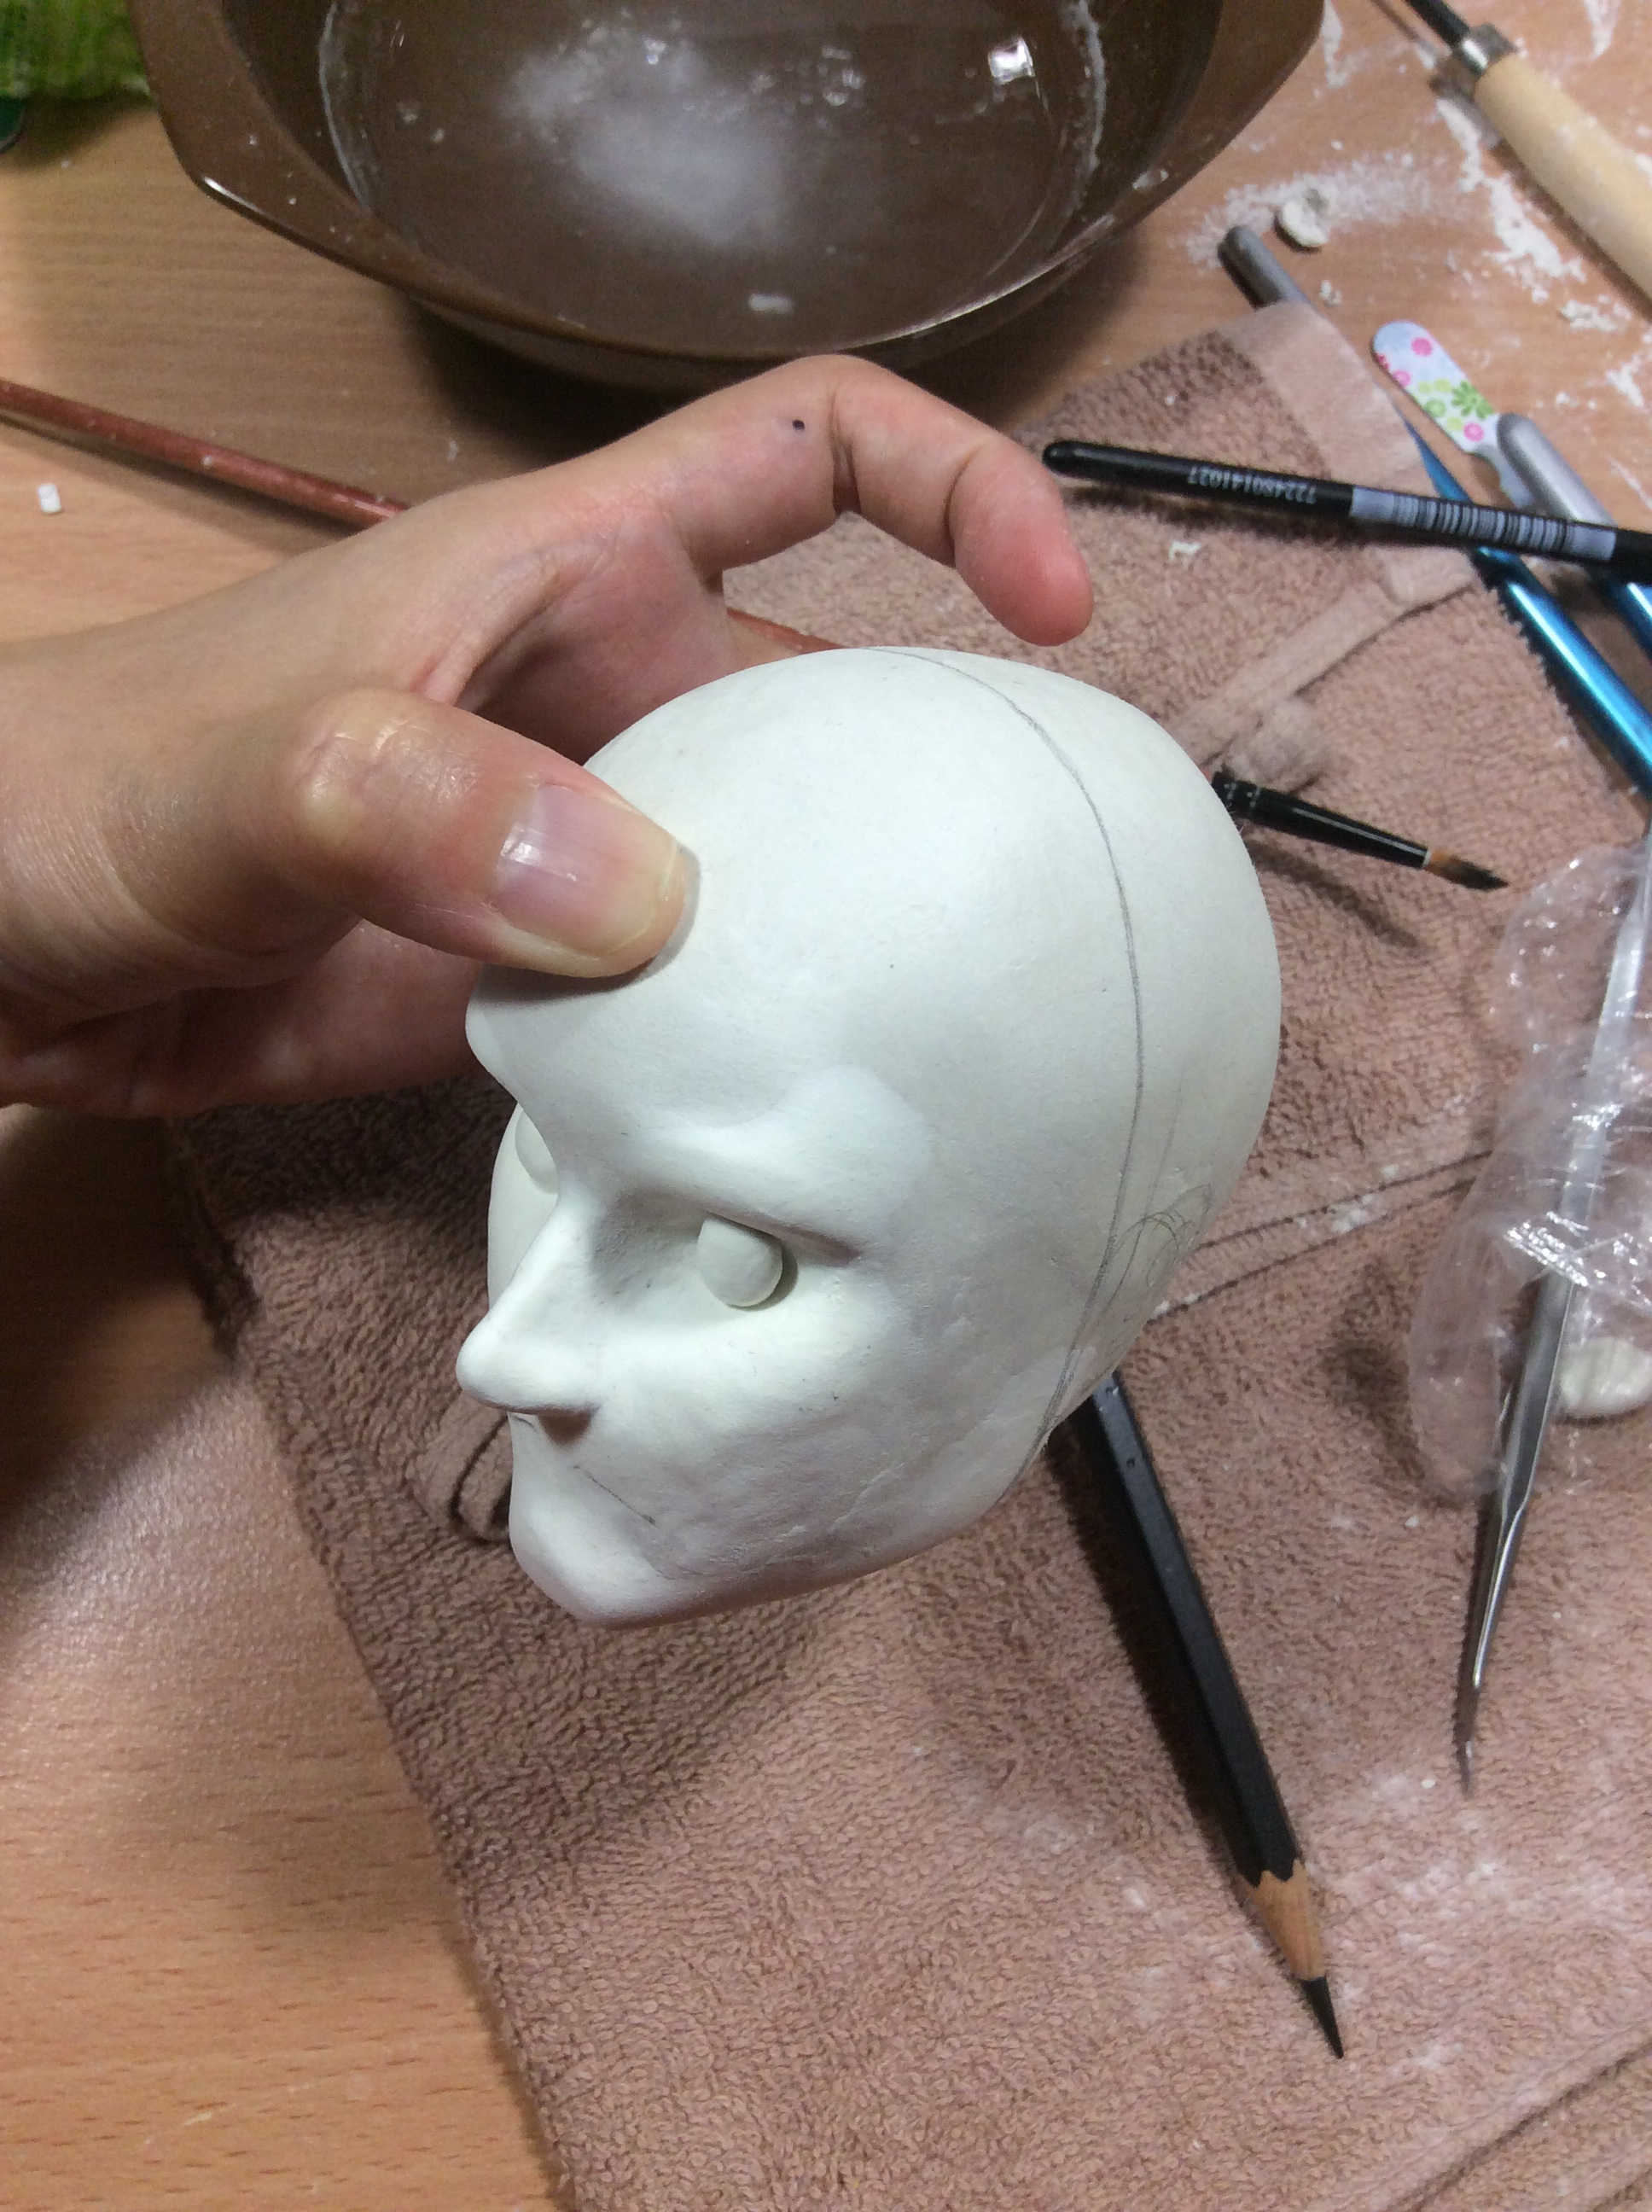 jemse---my-first-doll-head-making-progress-diary-part-2_31602473593_o